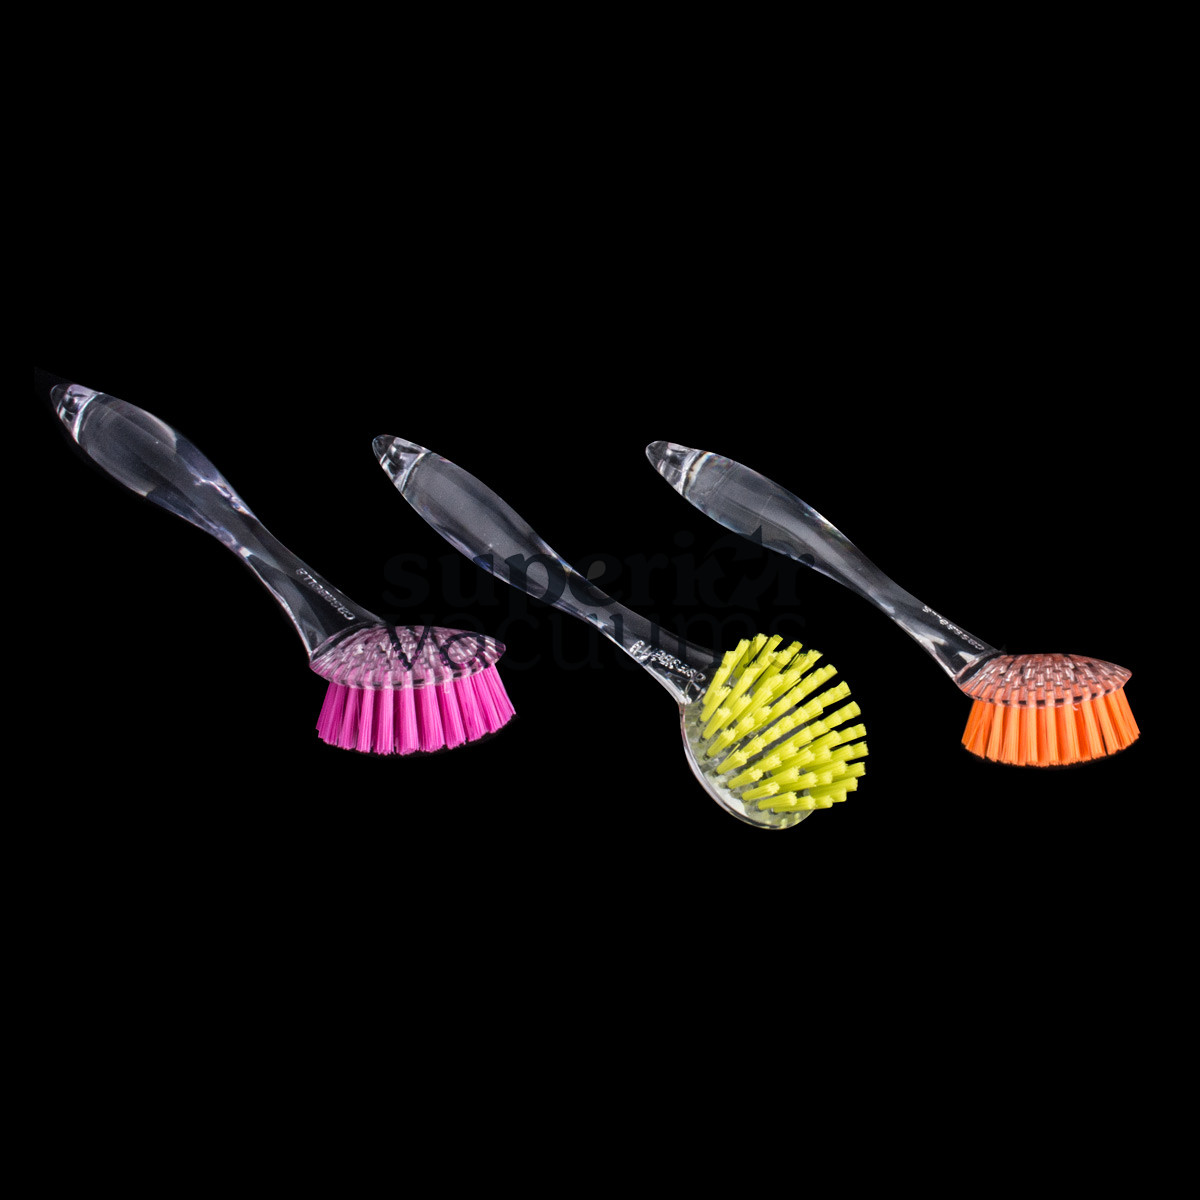 Round Brush Scrubber For Dishes